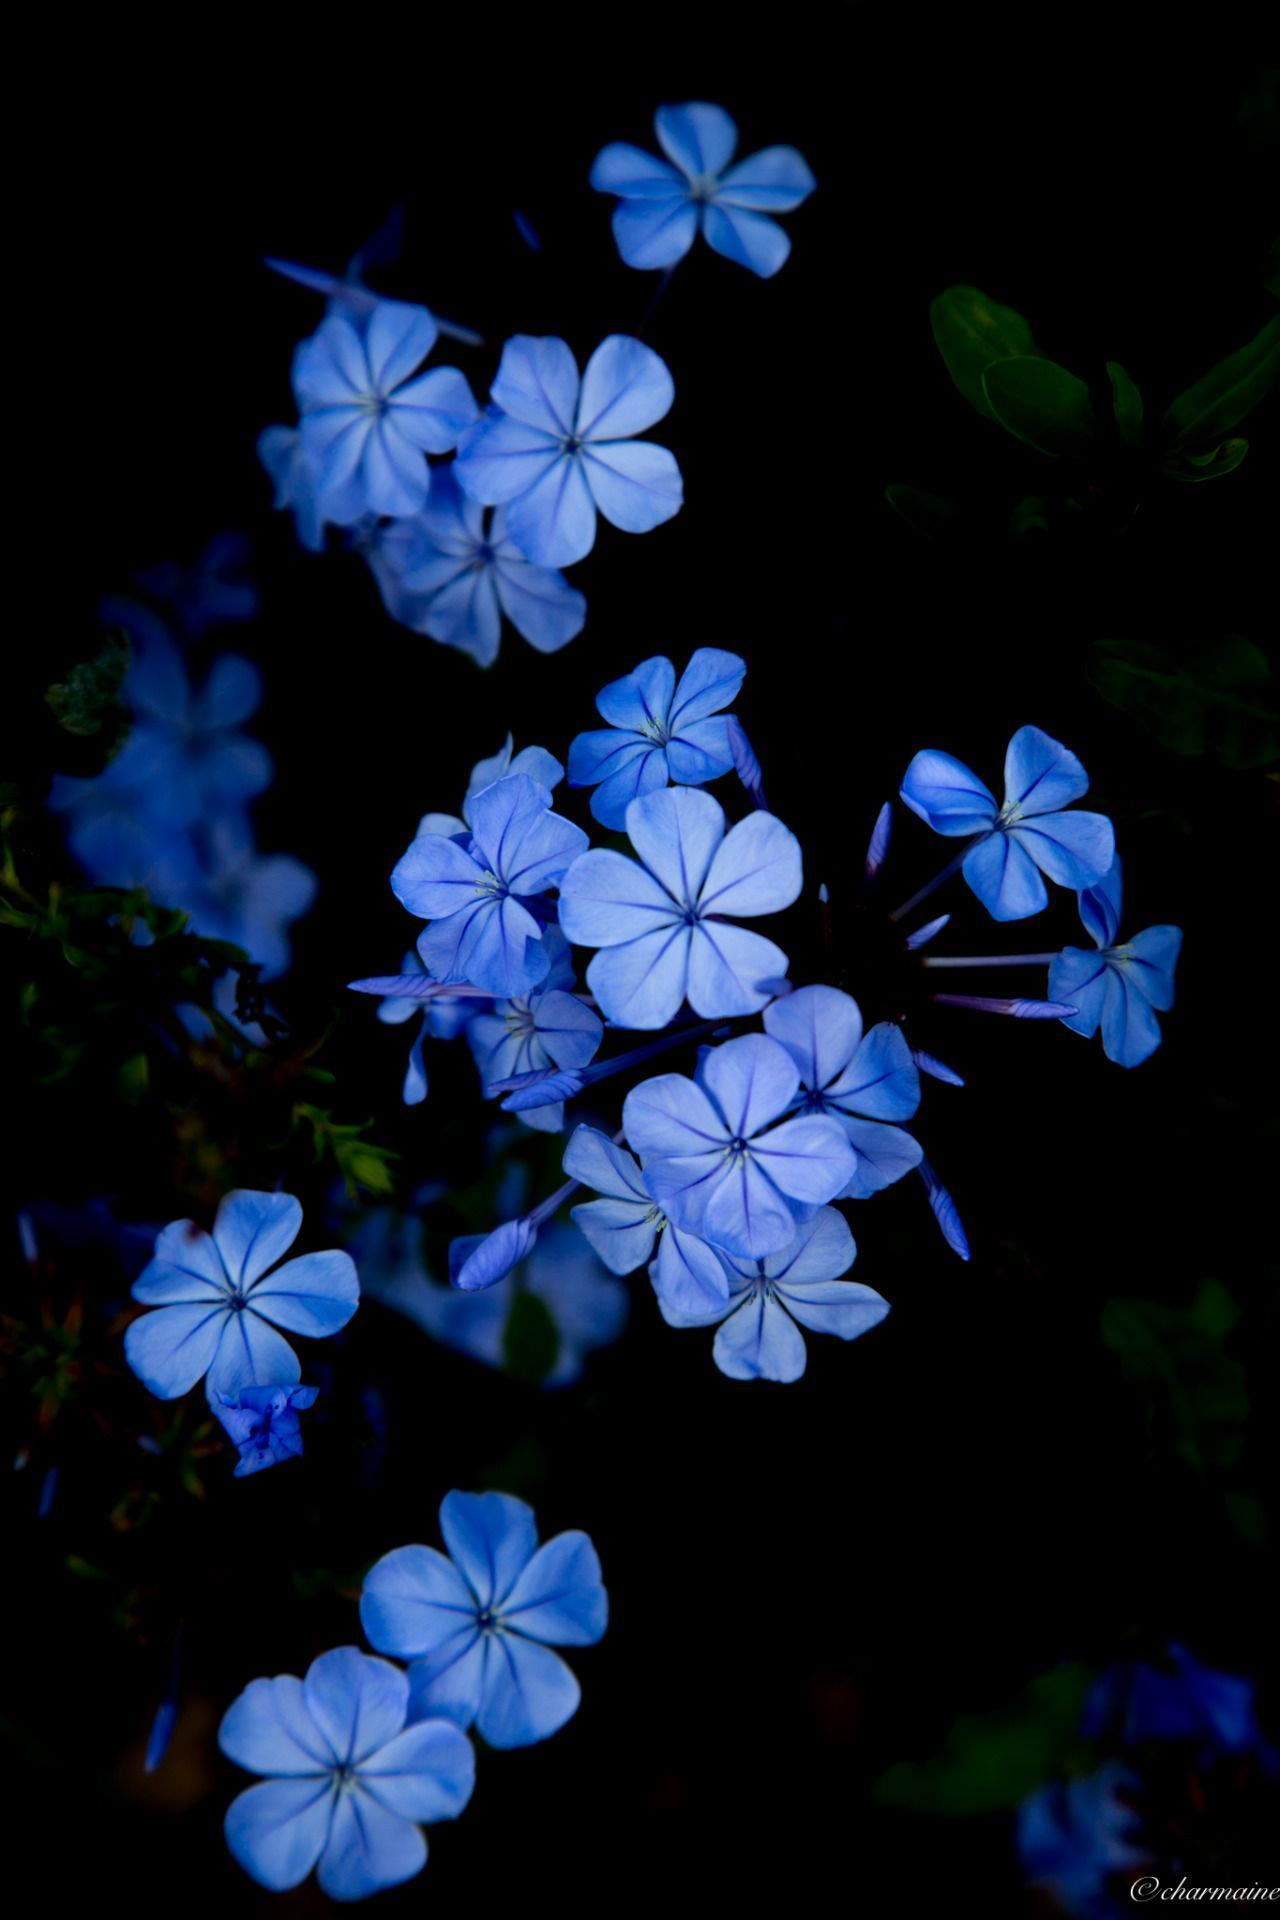 Dark Blue Flower Aesthetic Wallpapers Wallpaper Cave